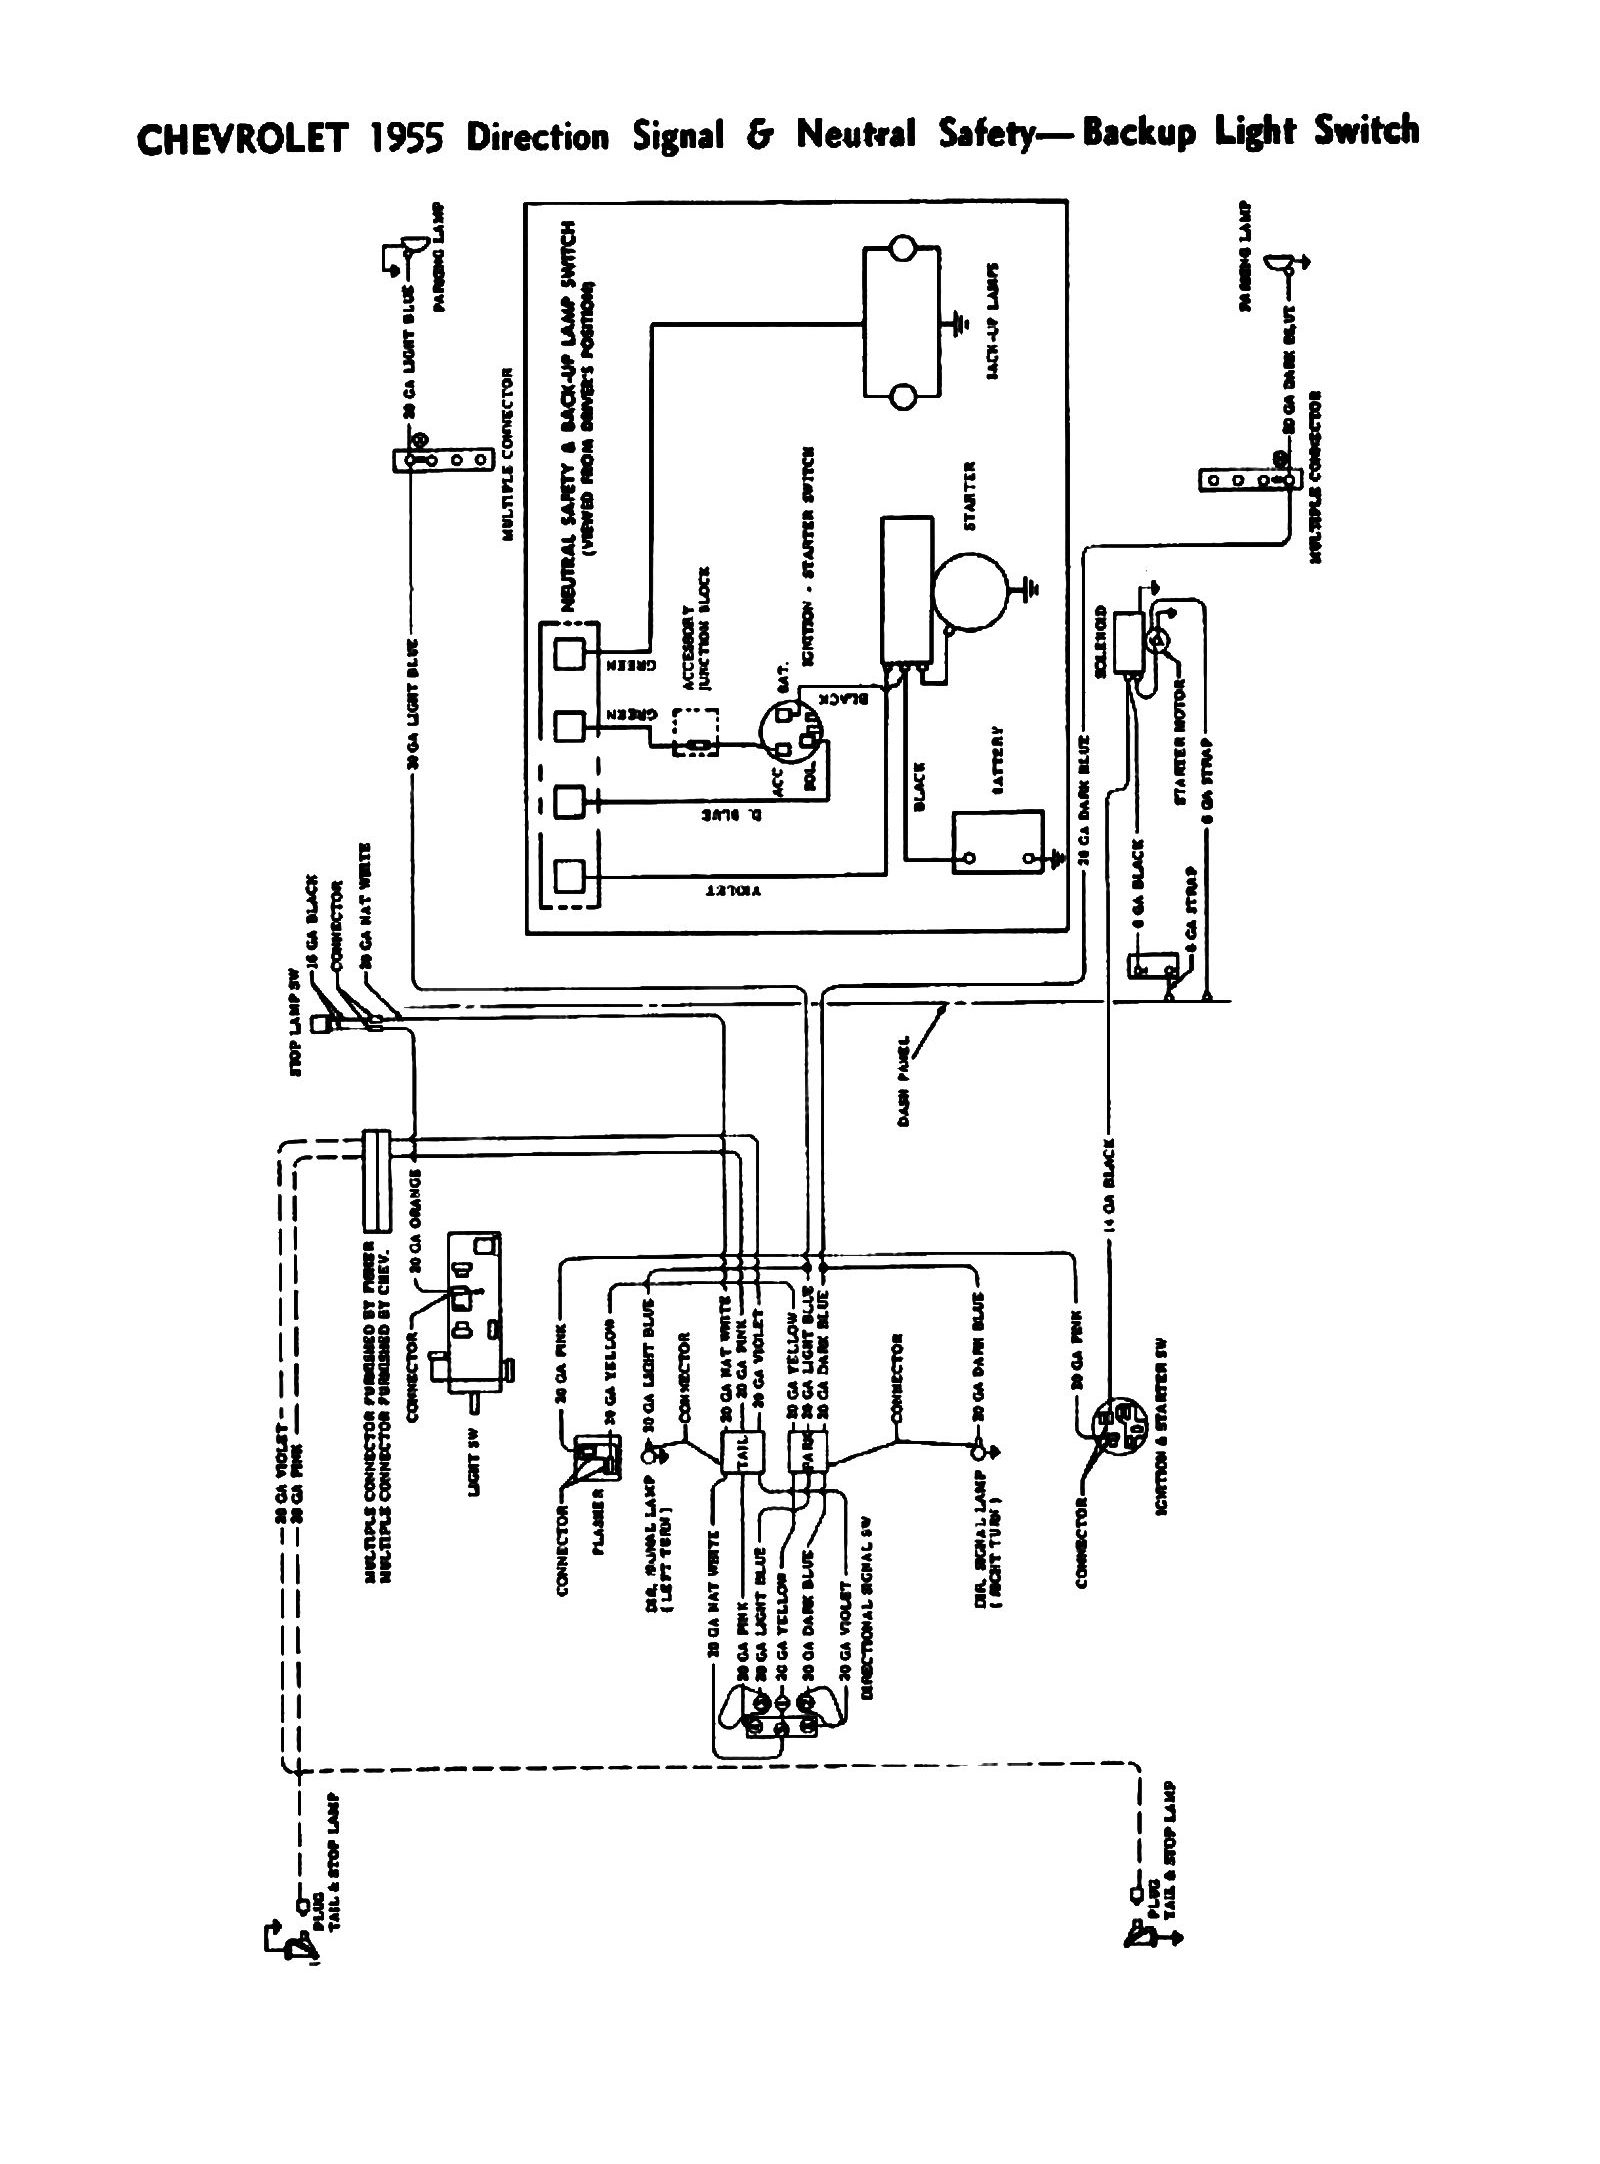 hight resolution of 57 chevy ignition switch wiring wiring diagram paper1957 chevy ignition wiring wiring diagram paper 57 chevy